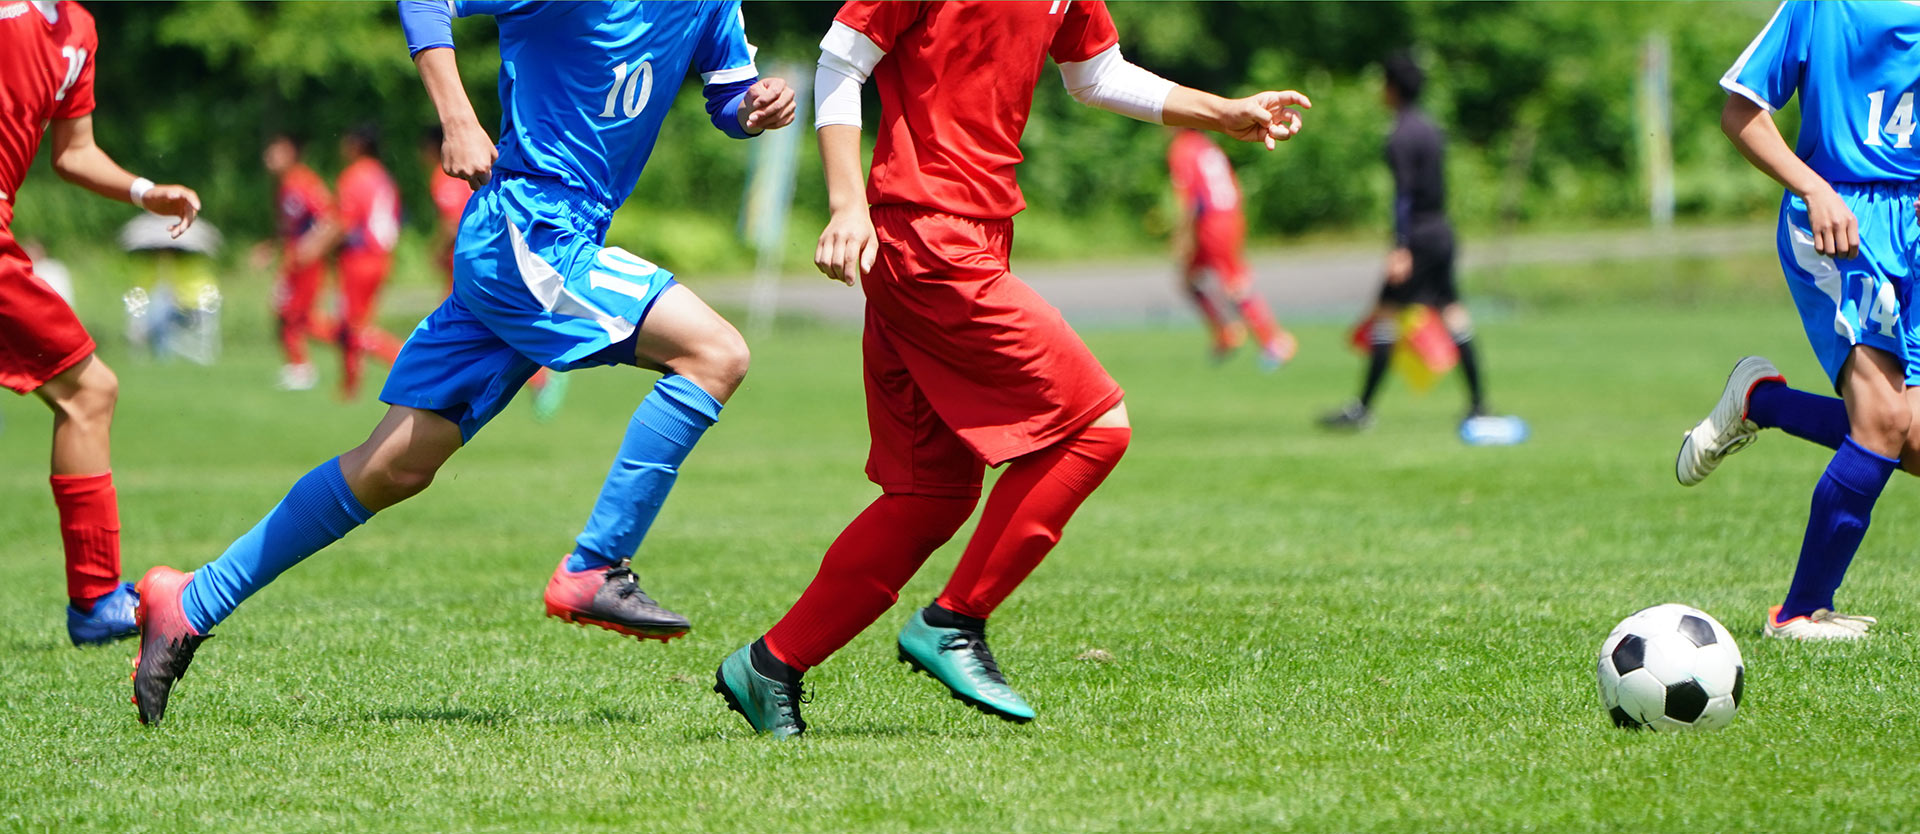 Providing Comprehensive Care To Keep You In The Game